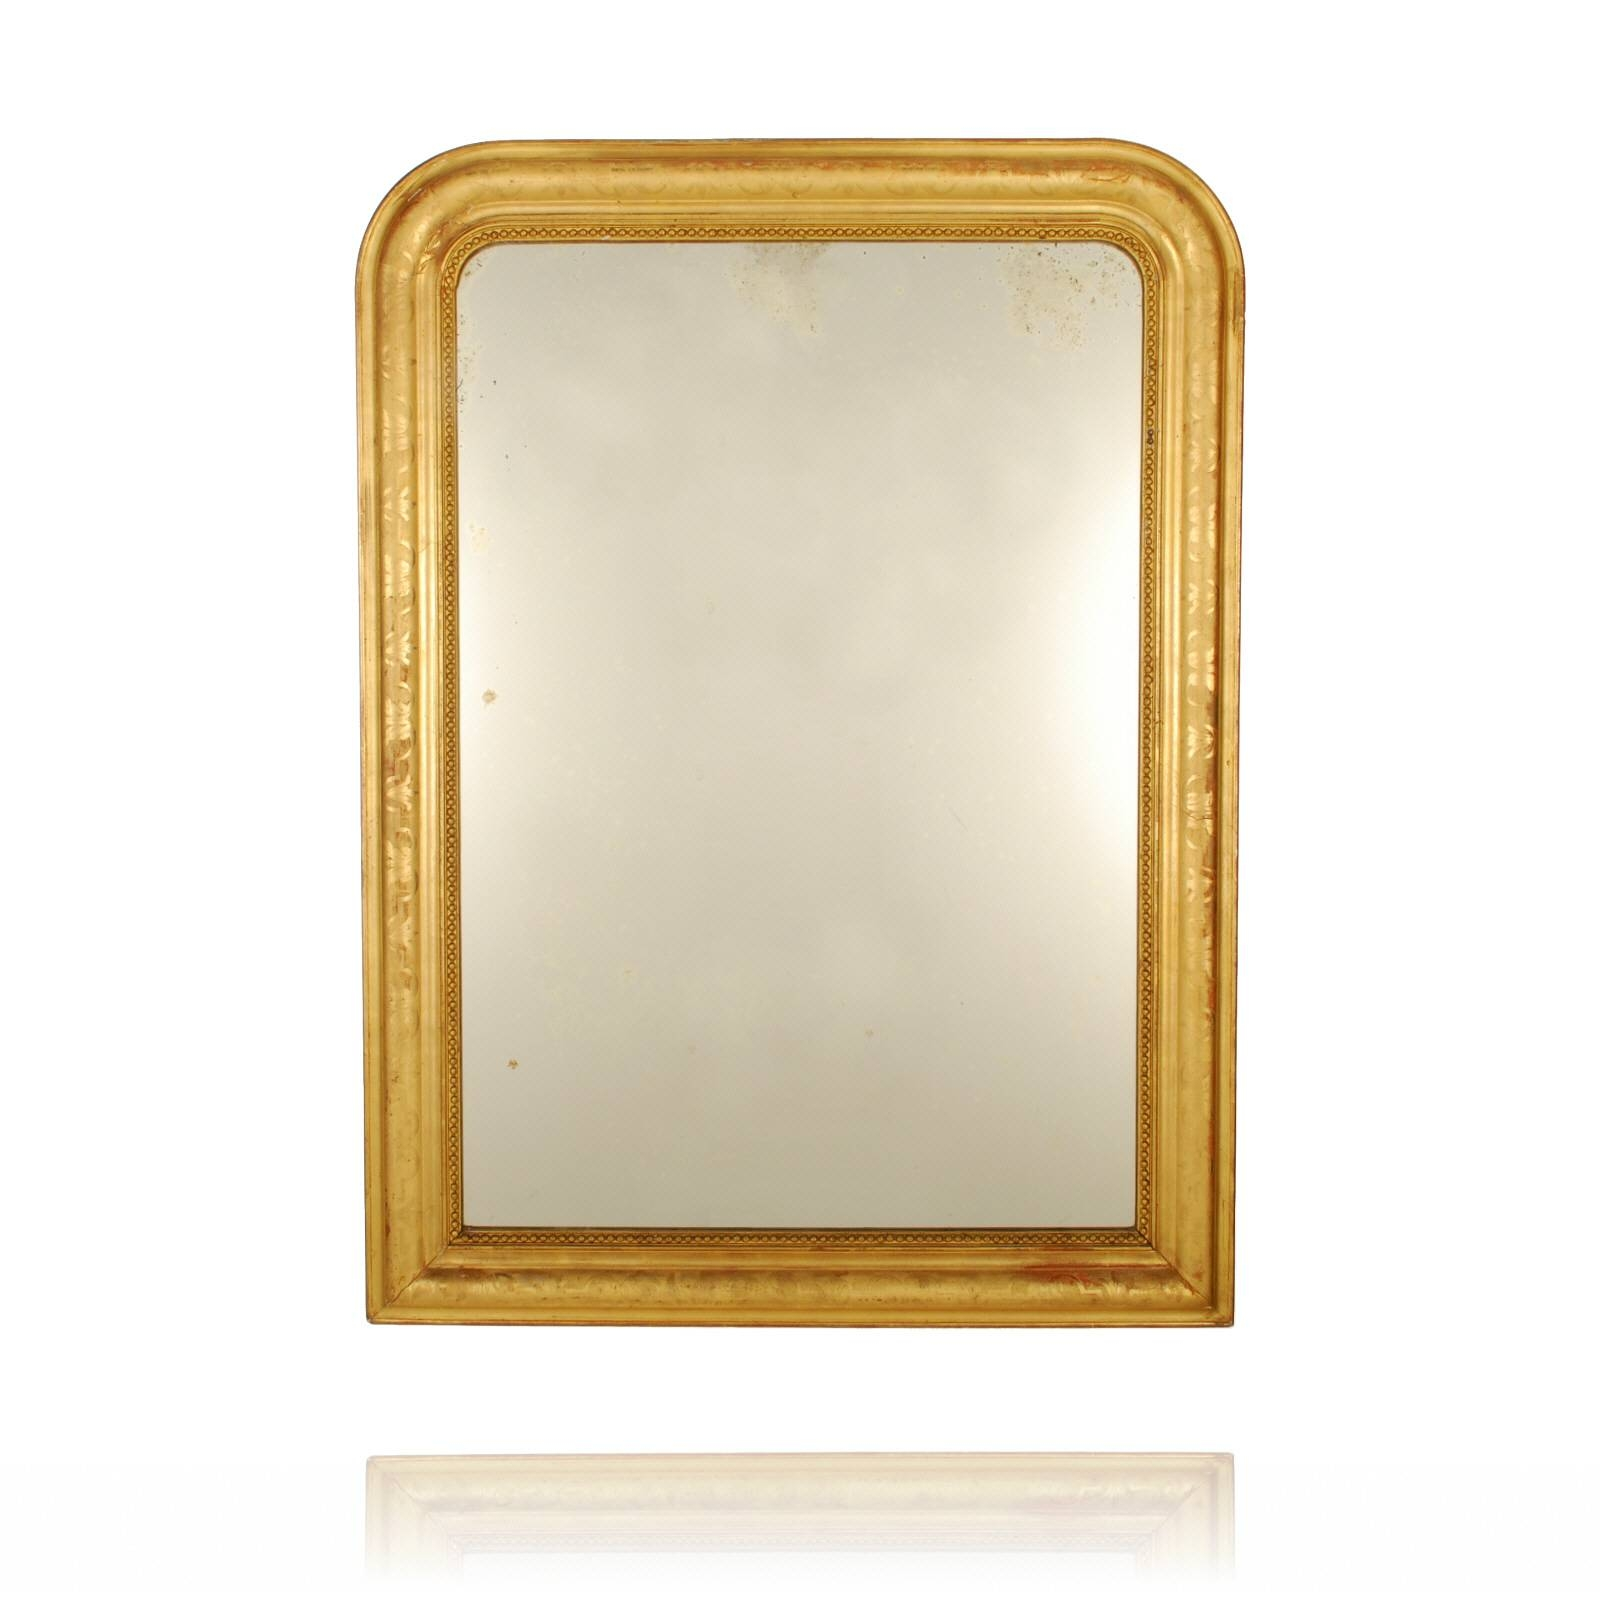 Creative Gold Leaf Mirror Lotusep Gold Leaf Mirrors For Sale Gold pertaining to Gold Antique Mirrors (Image 10 of 25)